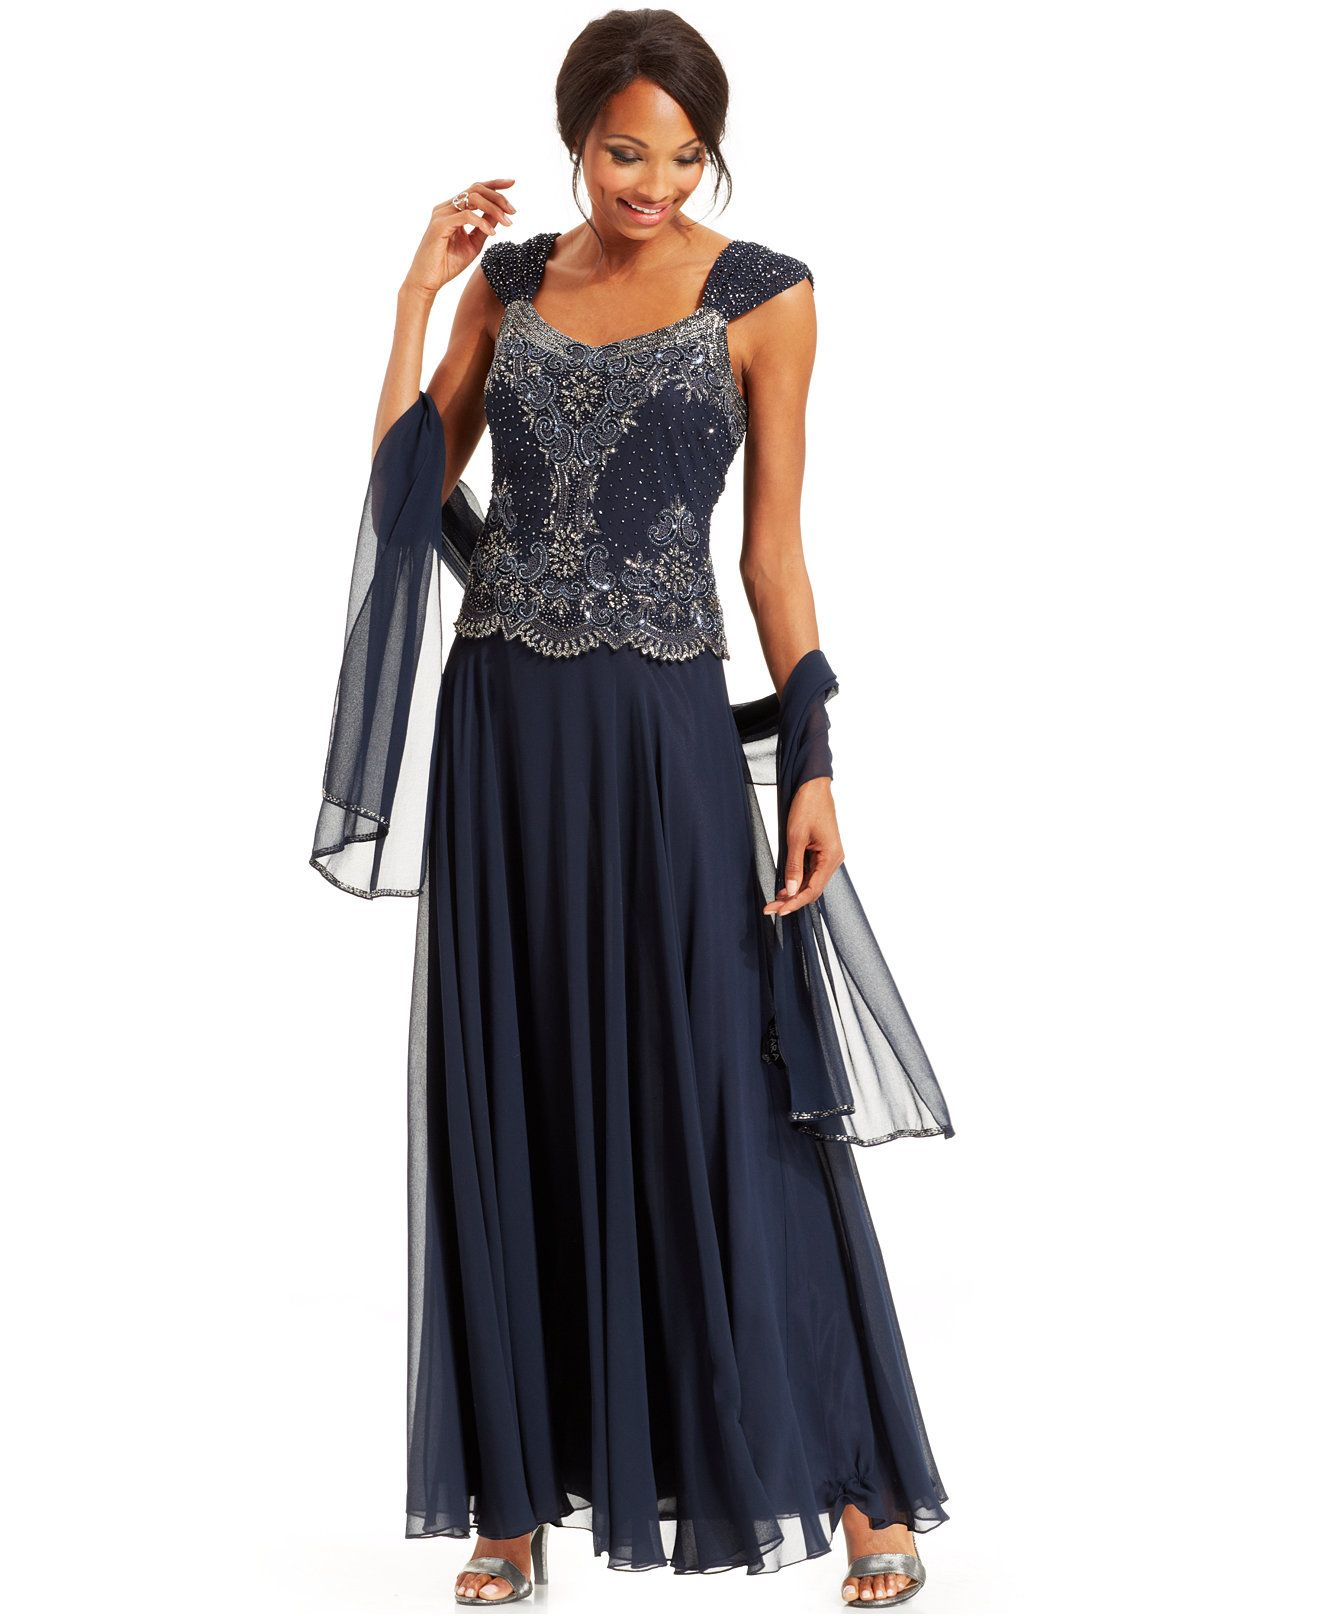 6563681f56 J Kara Beaded Bodice Chiffon Gown and Shawl - Dresses - Women - Macy s